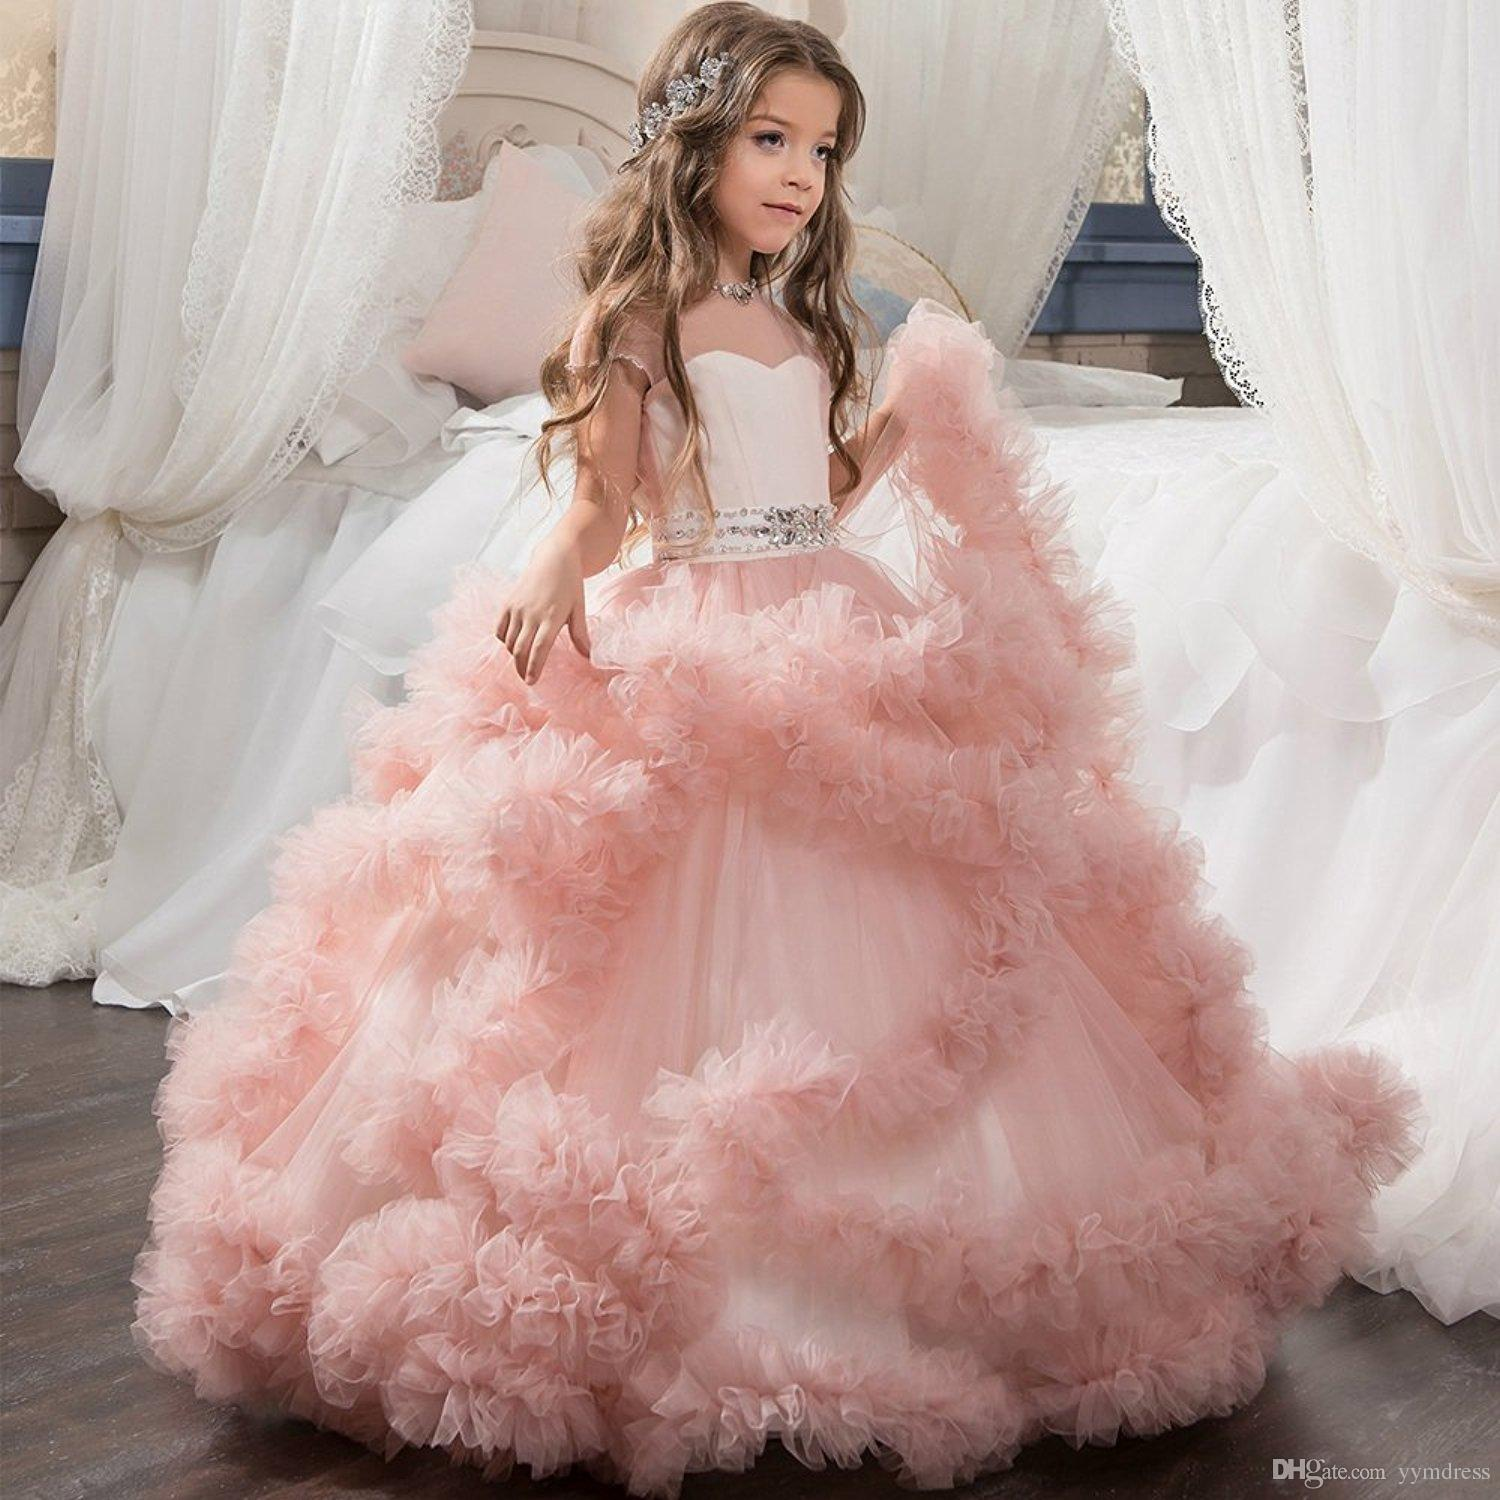 Magnificent Pageant Gown Resale Composition - Images for wedding ...